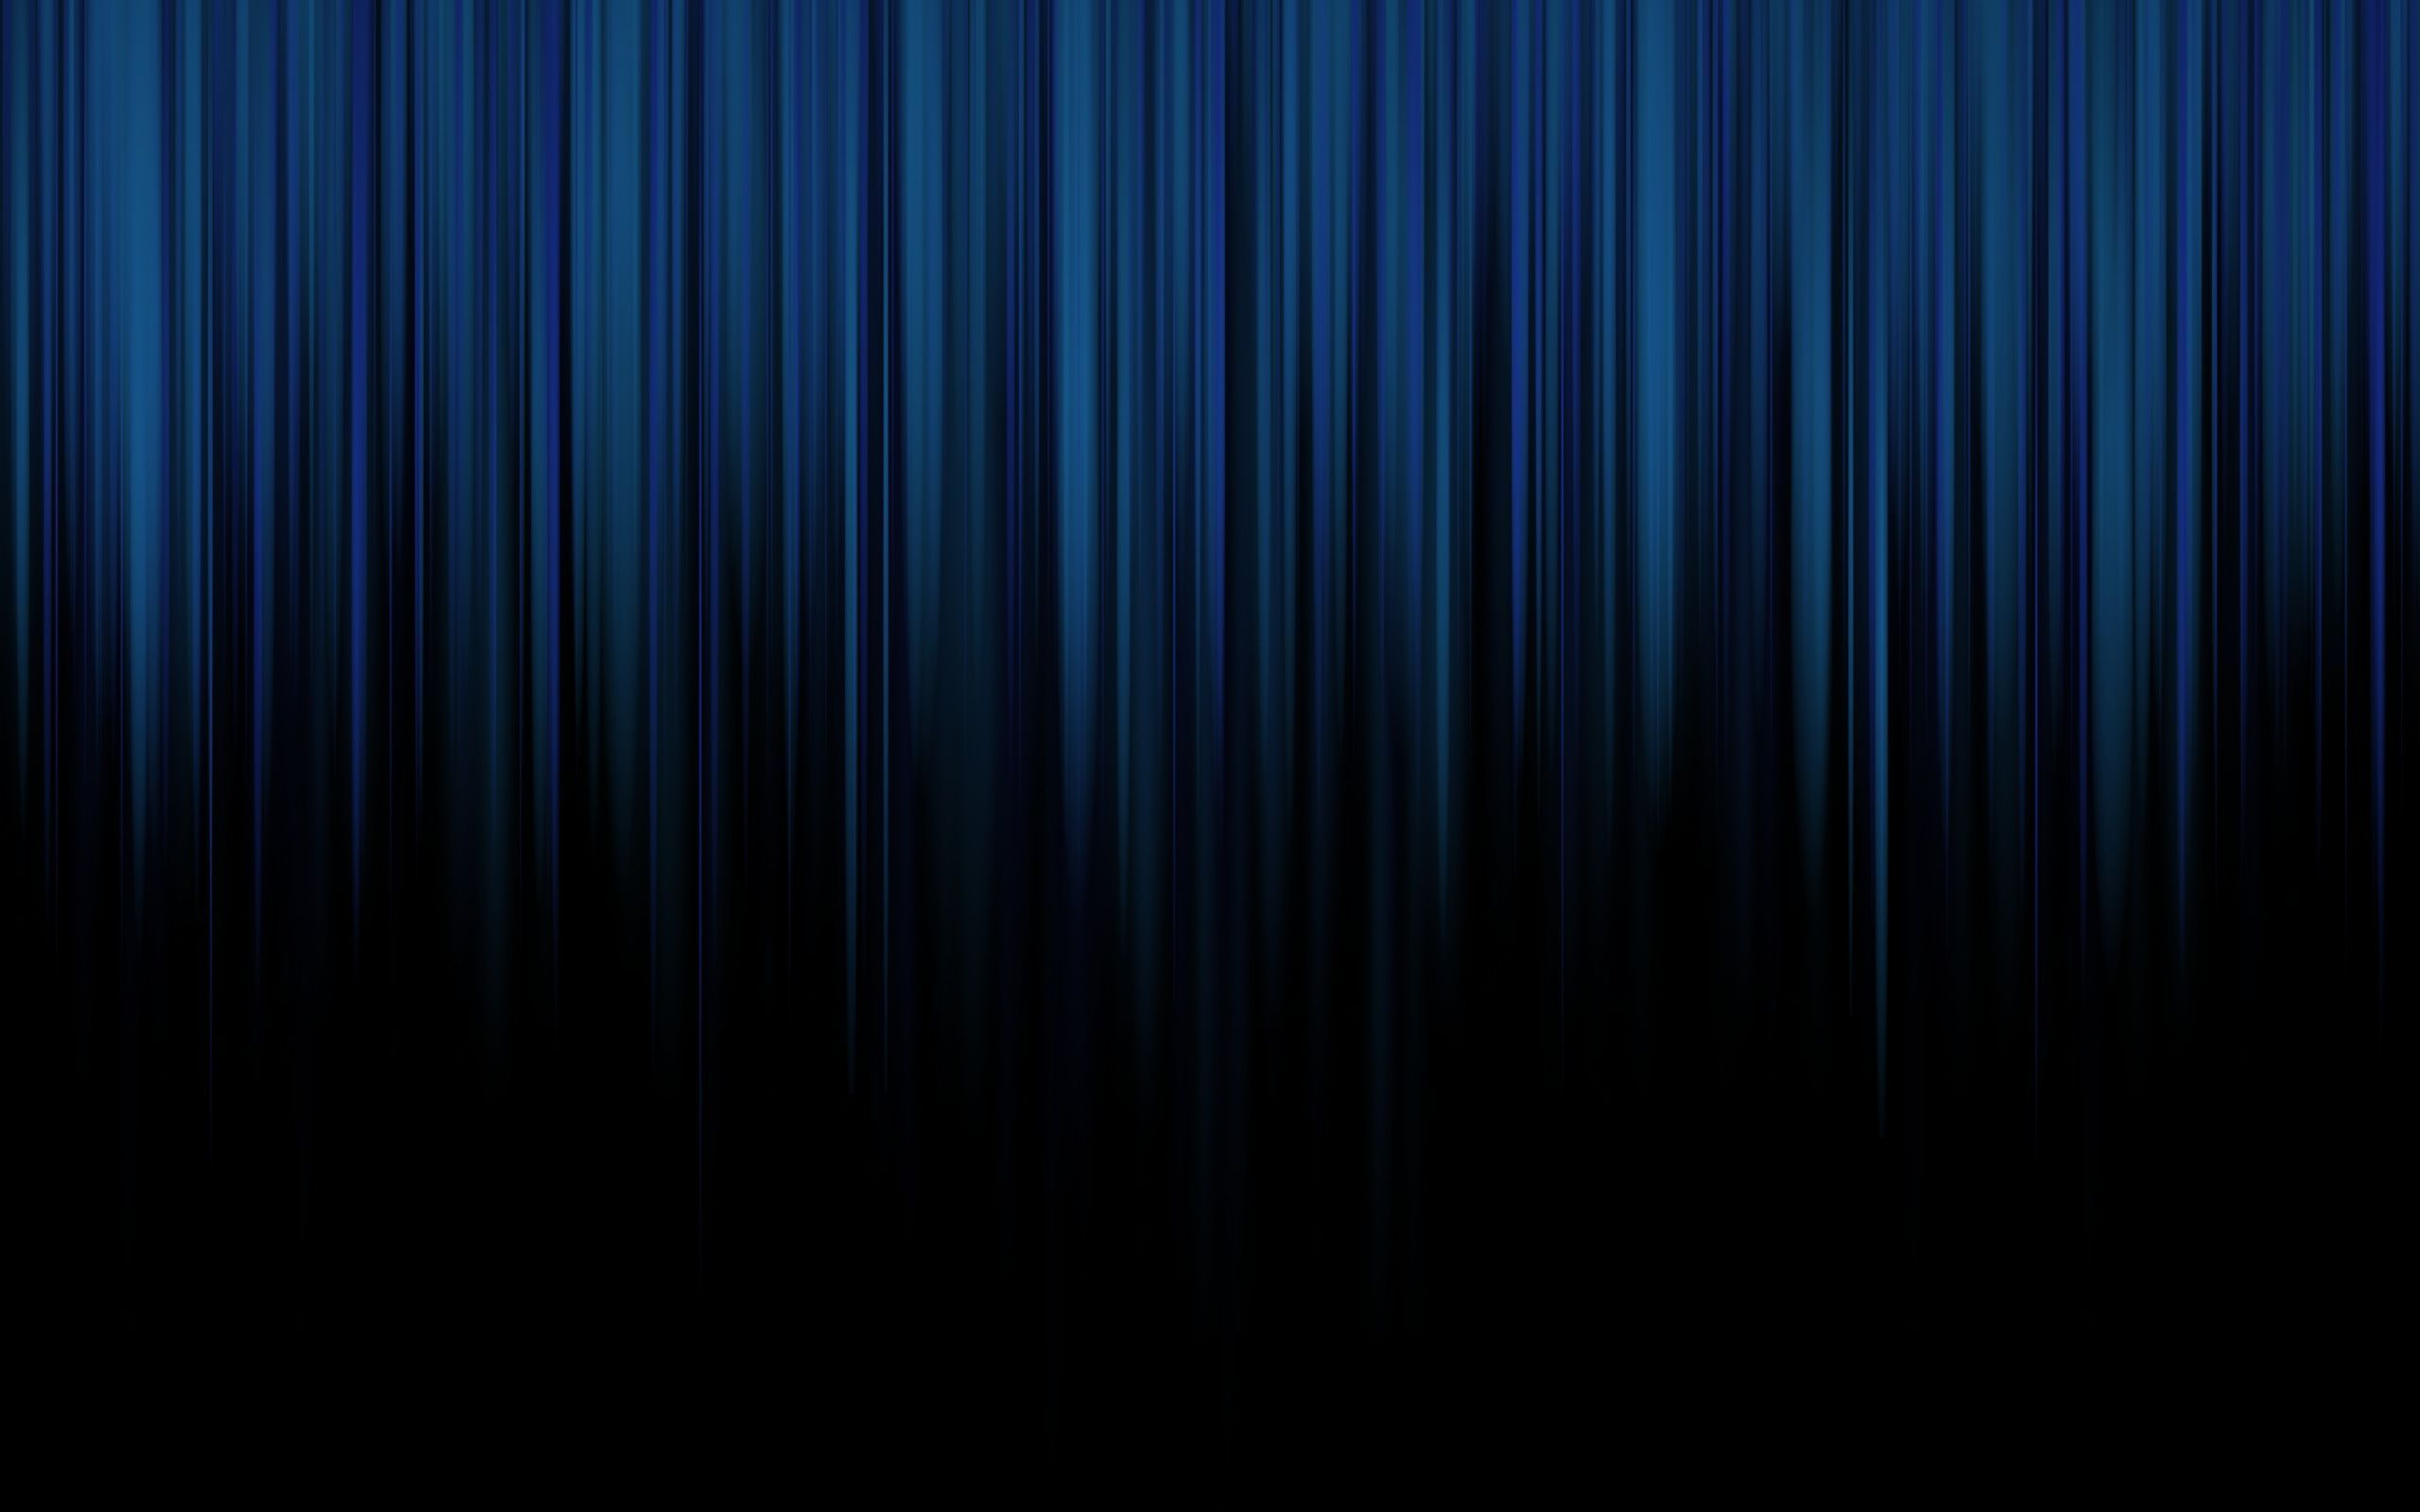 Cute Brand Wallpapers Blue And Black Wallpaper 43 2560x1600